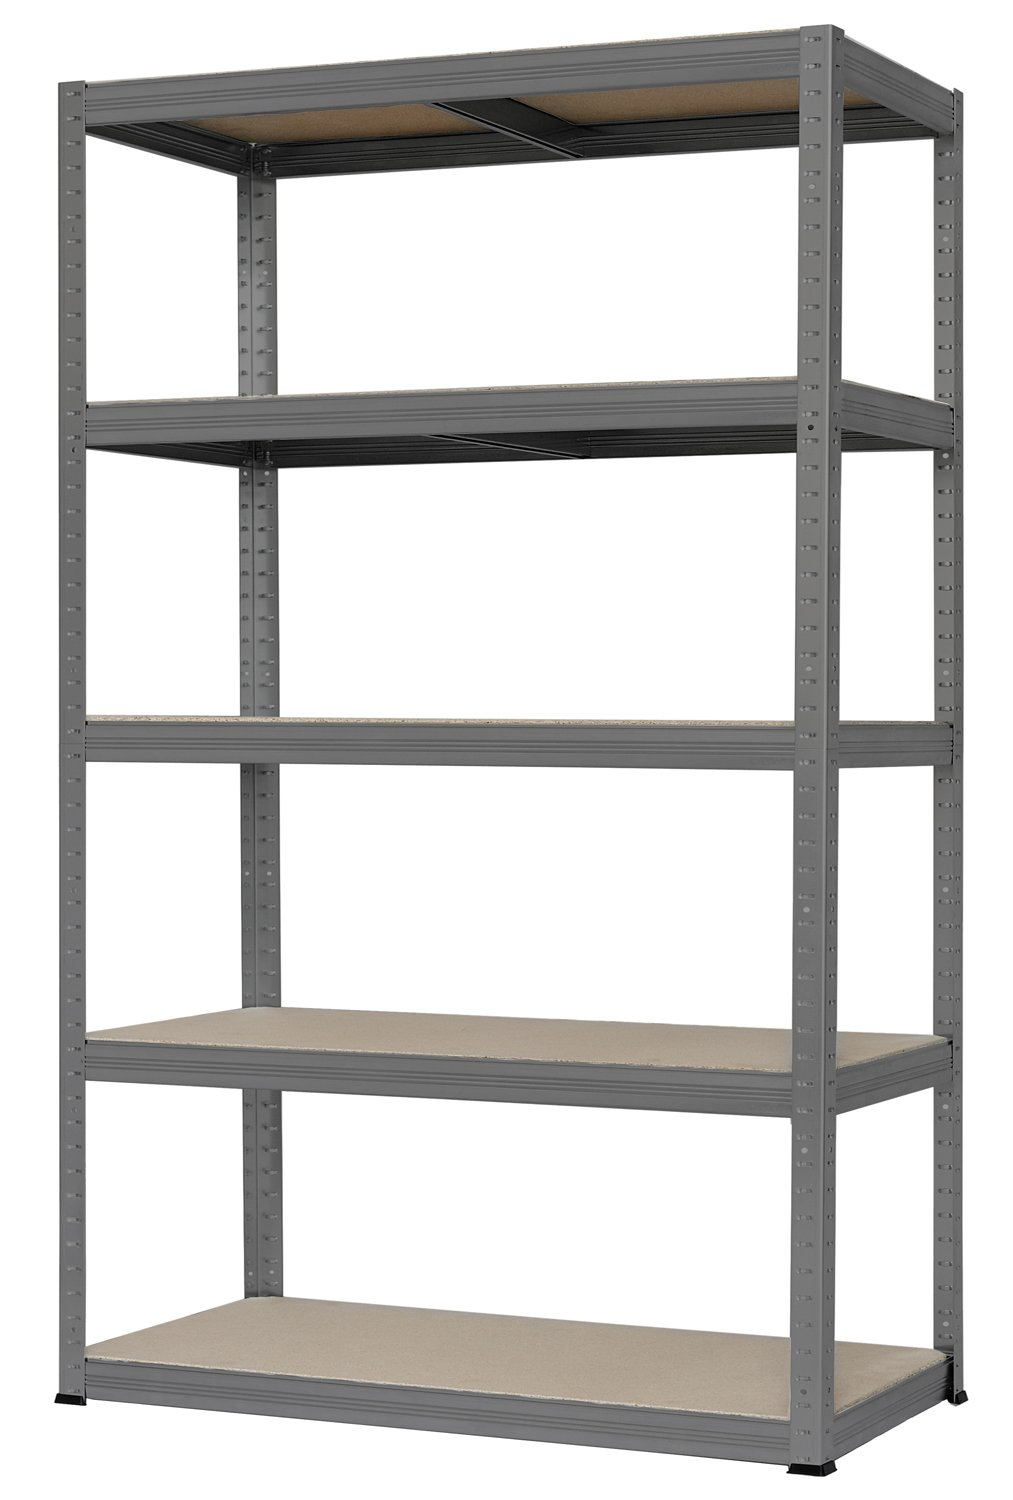 Hans Schourup wide span shelf with 5 shelves, made of MDF, load capacity of up to 250 kg per shelf, 180 cm x 120 cm x 60 cm, in grey, 13501100